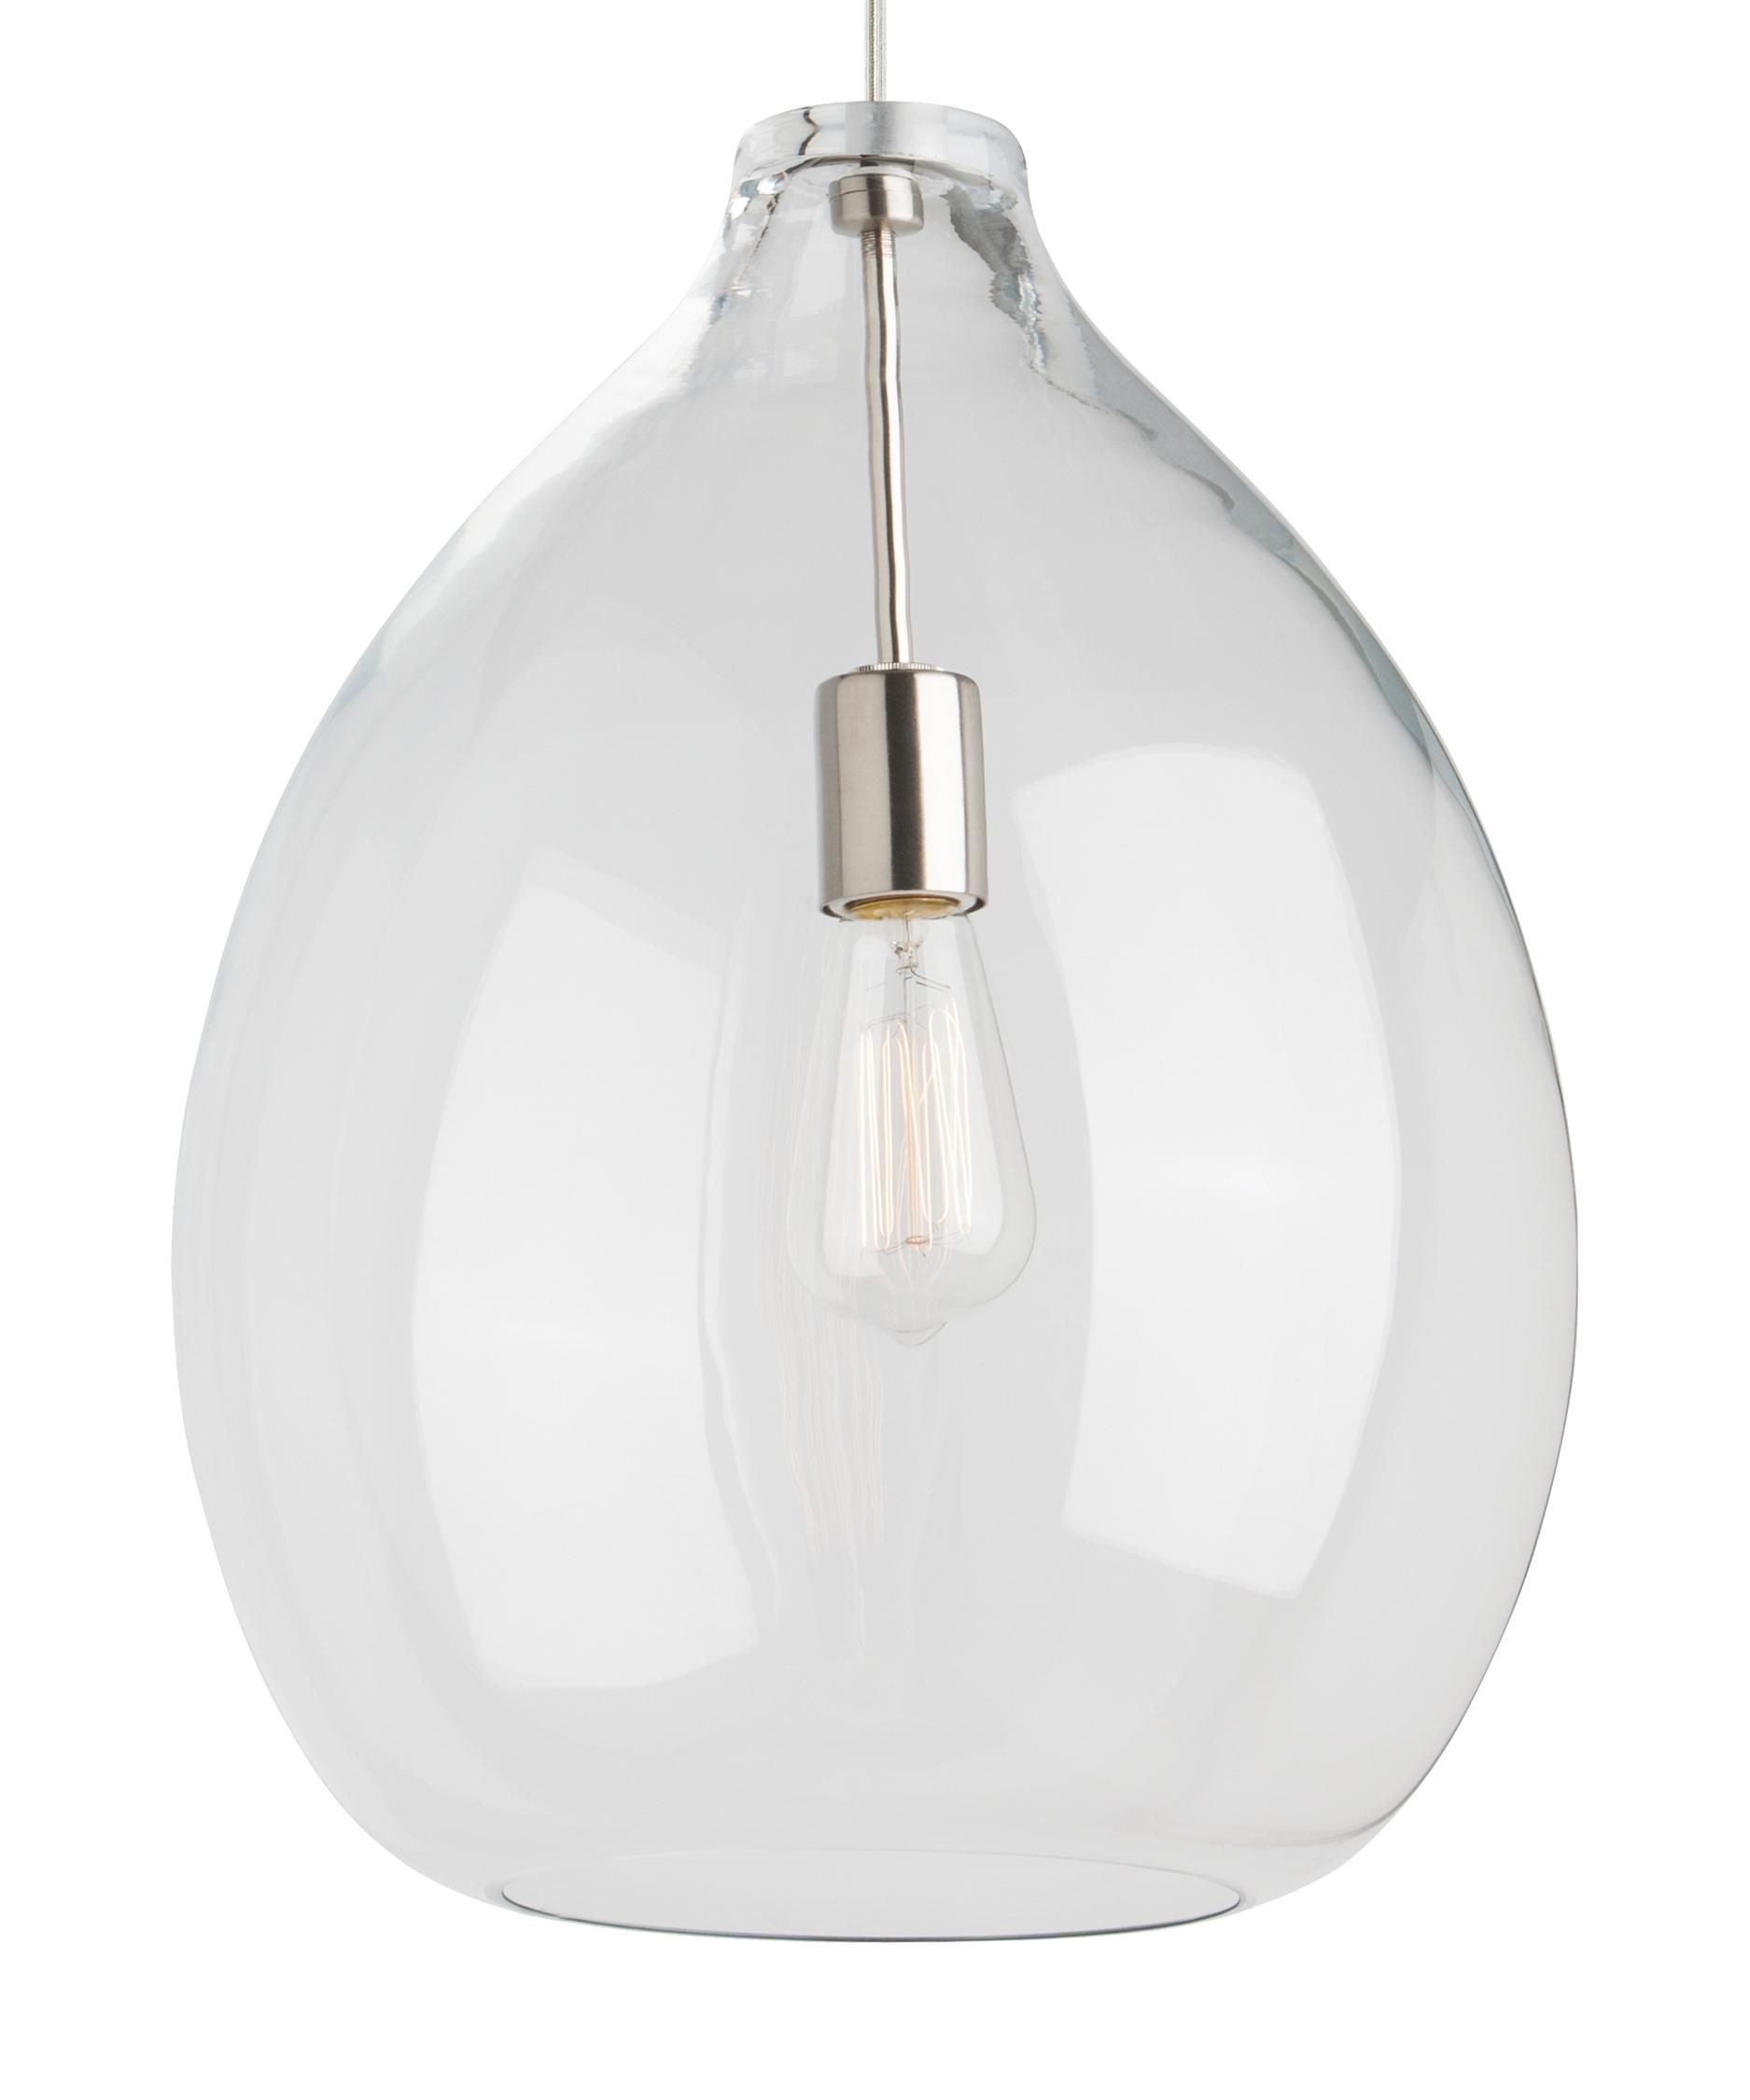 Tech lighting 700tdqnt quinton 16 inch large pendant height 2030 tech lighting quinton wide single light pendant clear shade with satin nickel finish indoor lighting pendants recessed lighting trims aloadofball Image collections